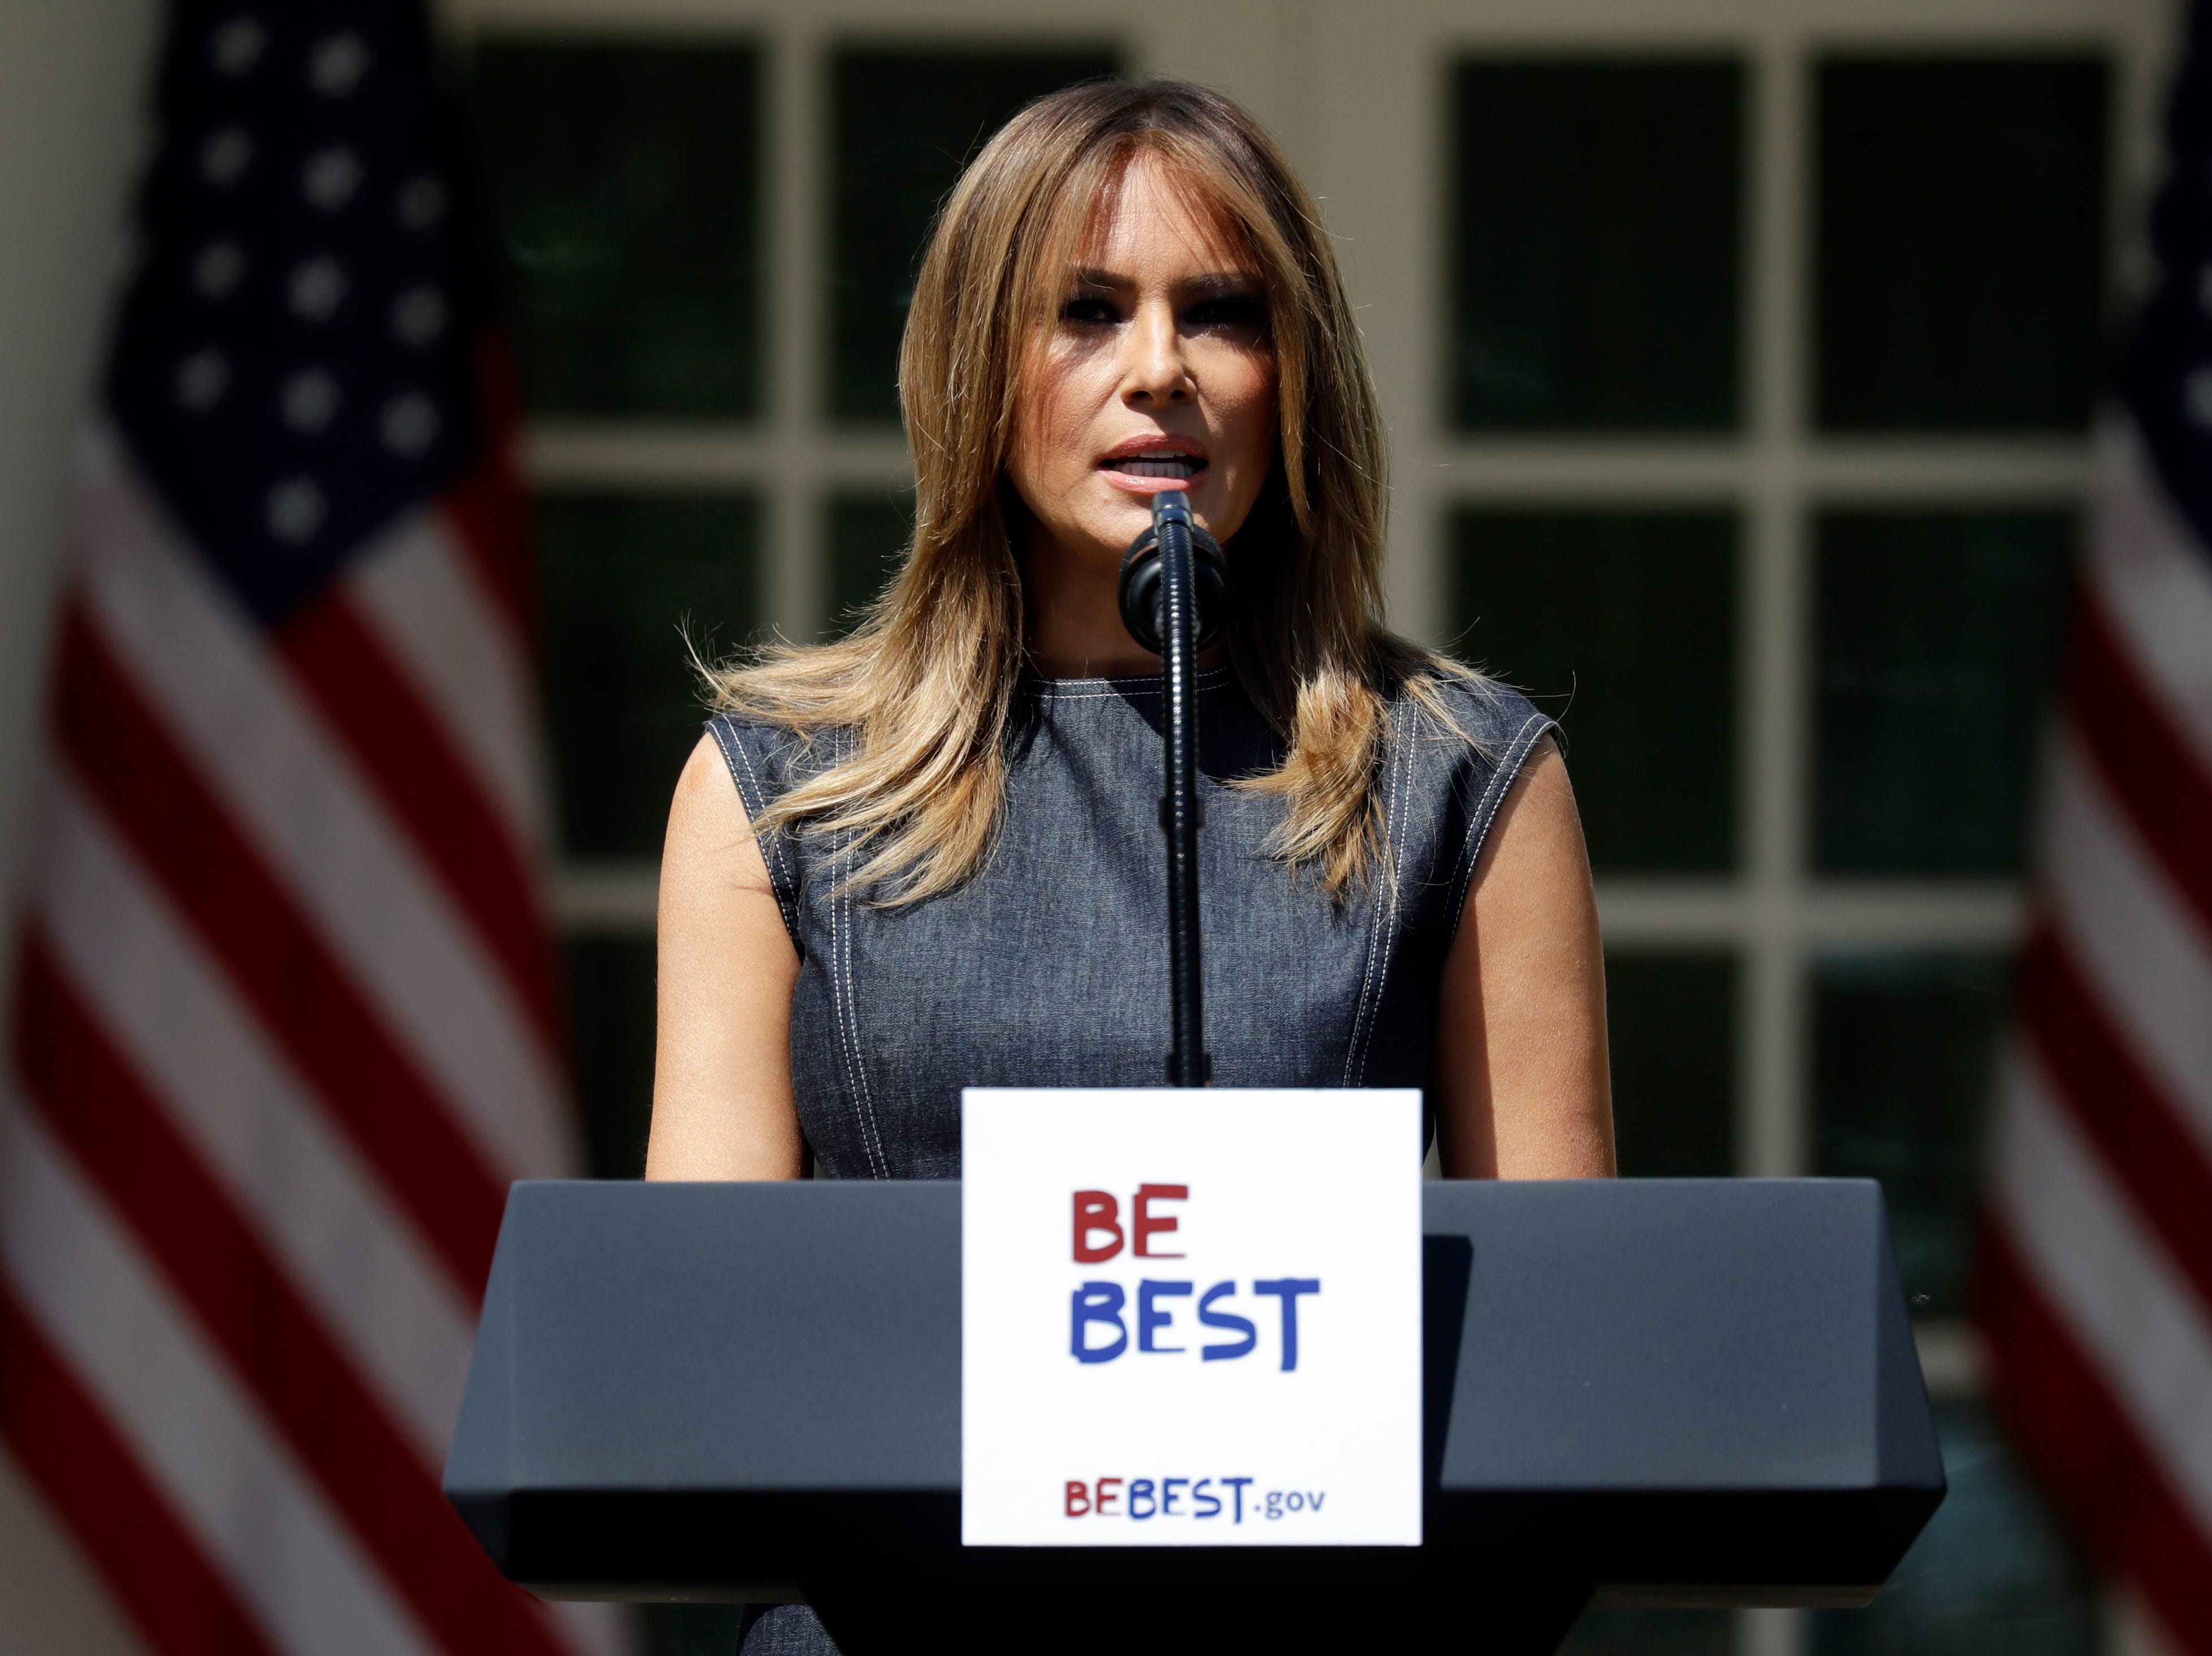 First lady Melania Trump speaks at the opening of a program for the first lady's Be Best initiative in the Rose Garden of the White House, Tuesday, May 7, 2019, in Washington.